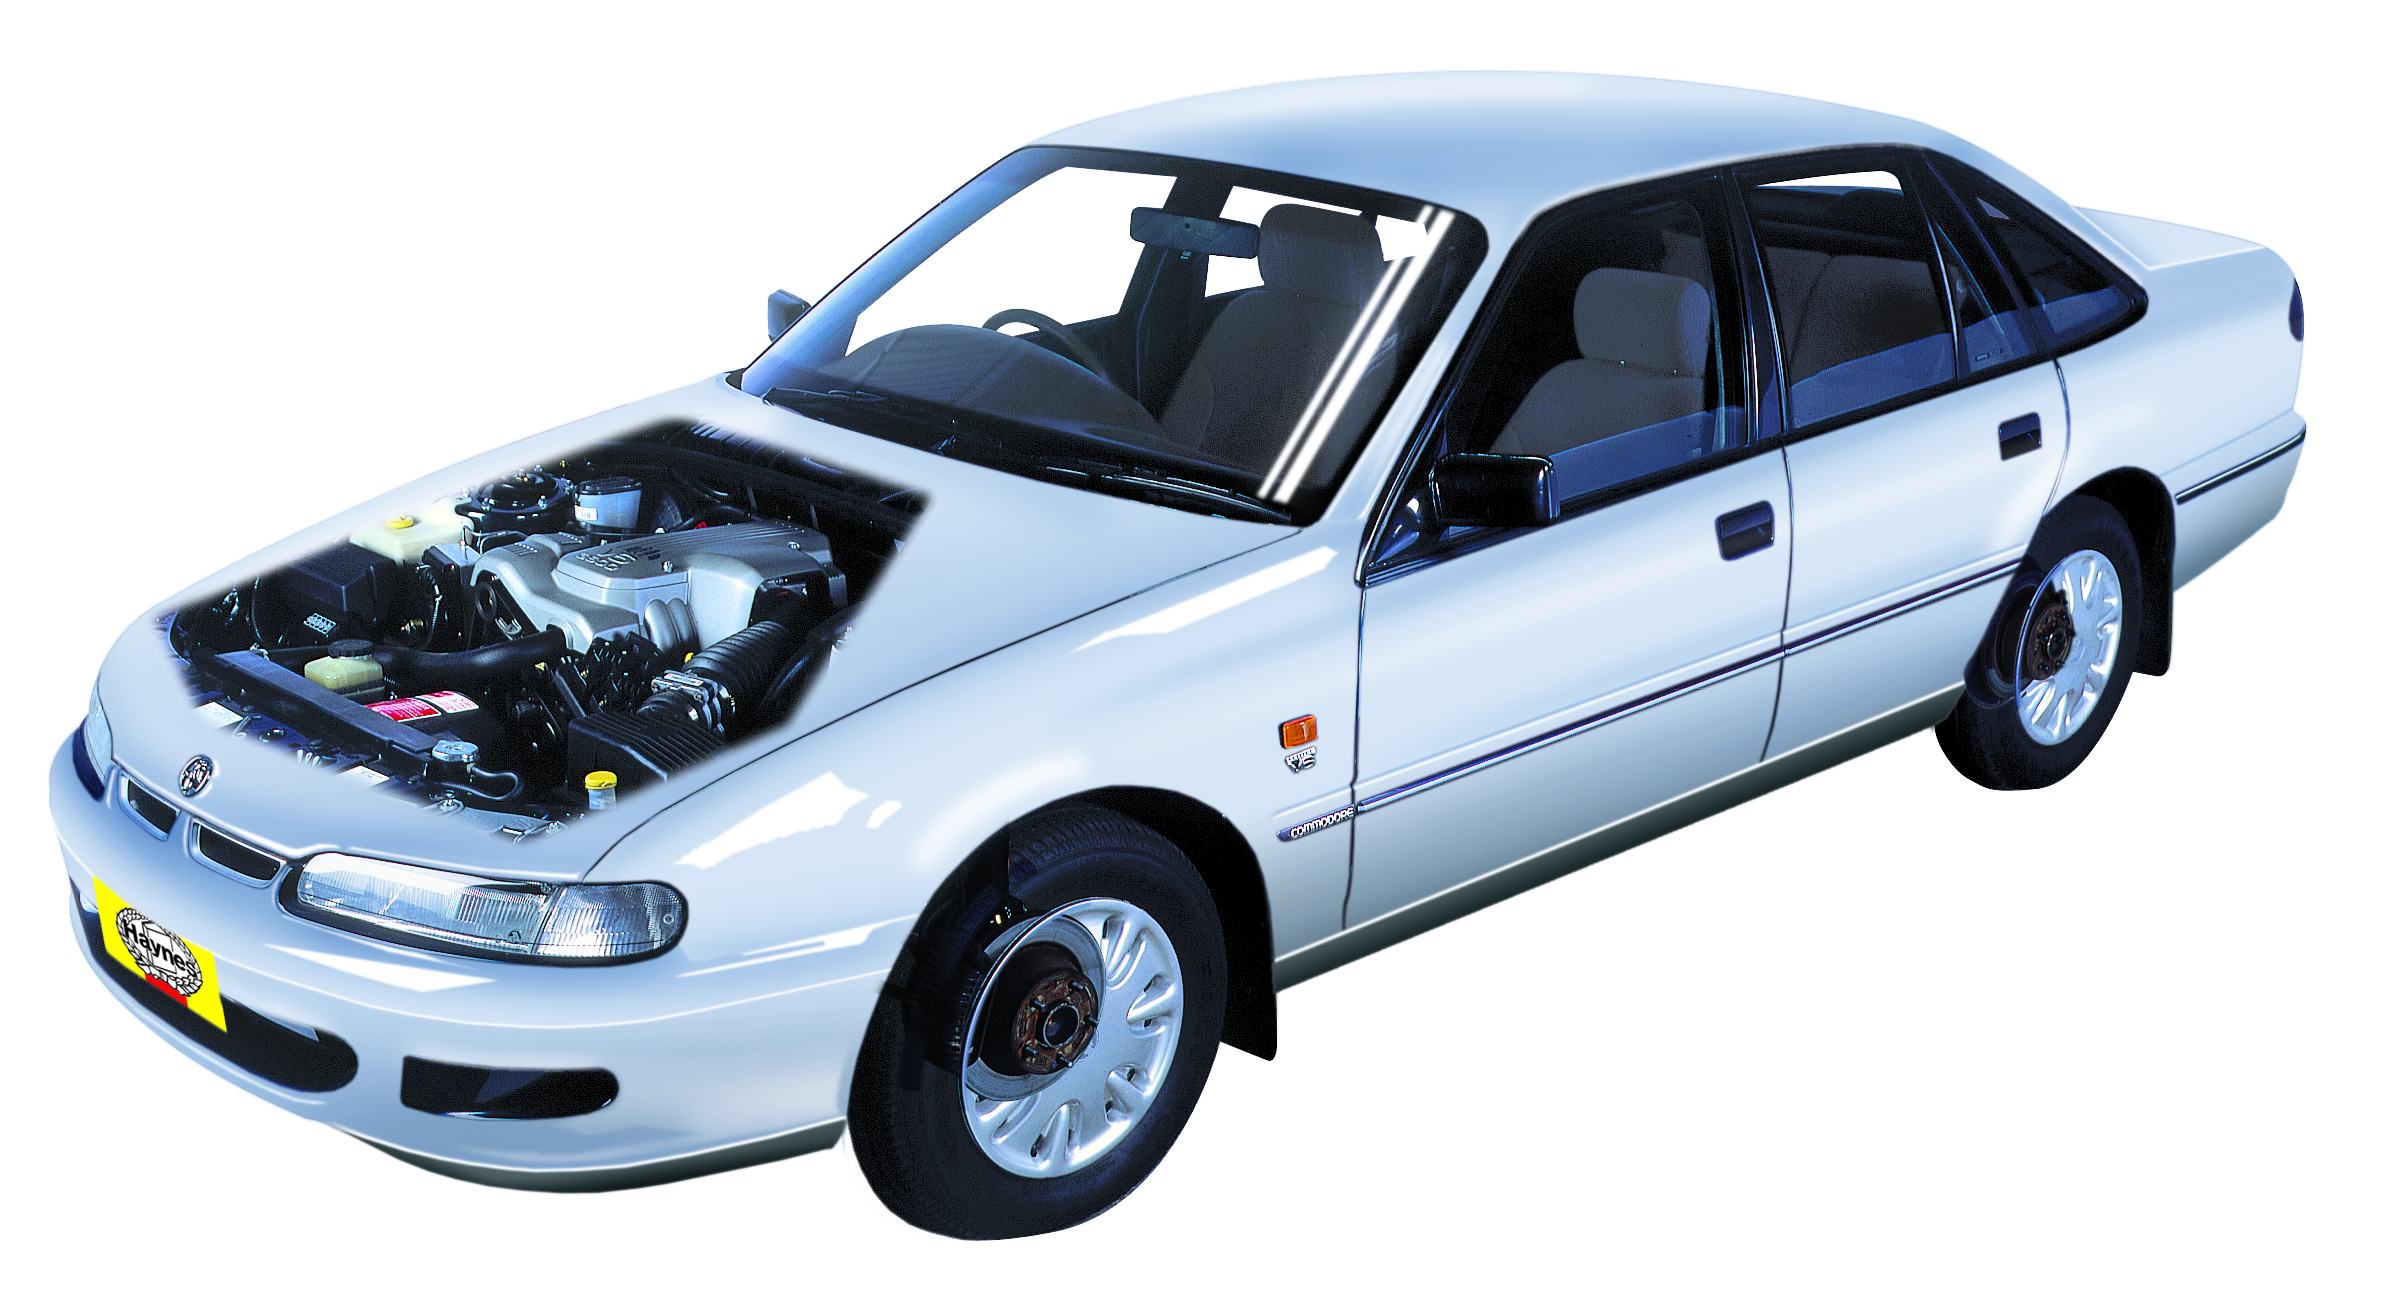 Picture of Toyota Lexcen